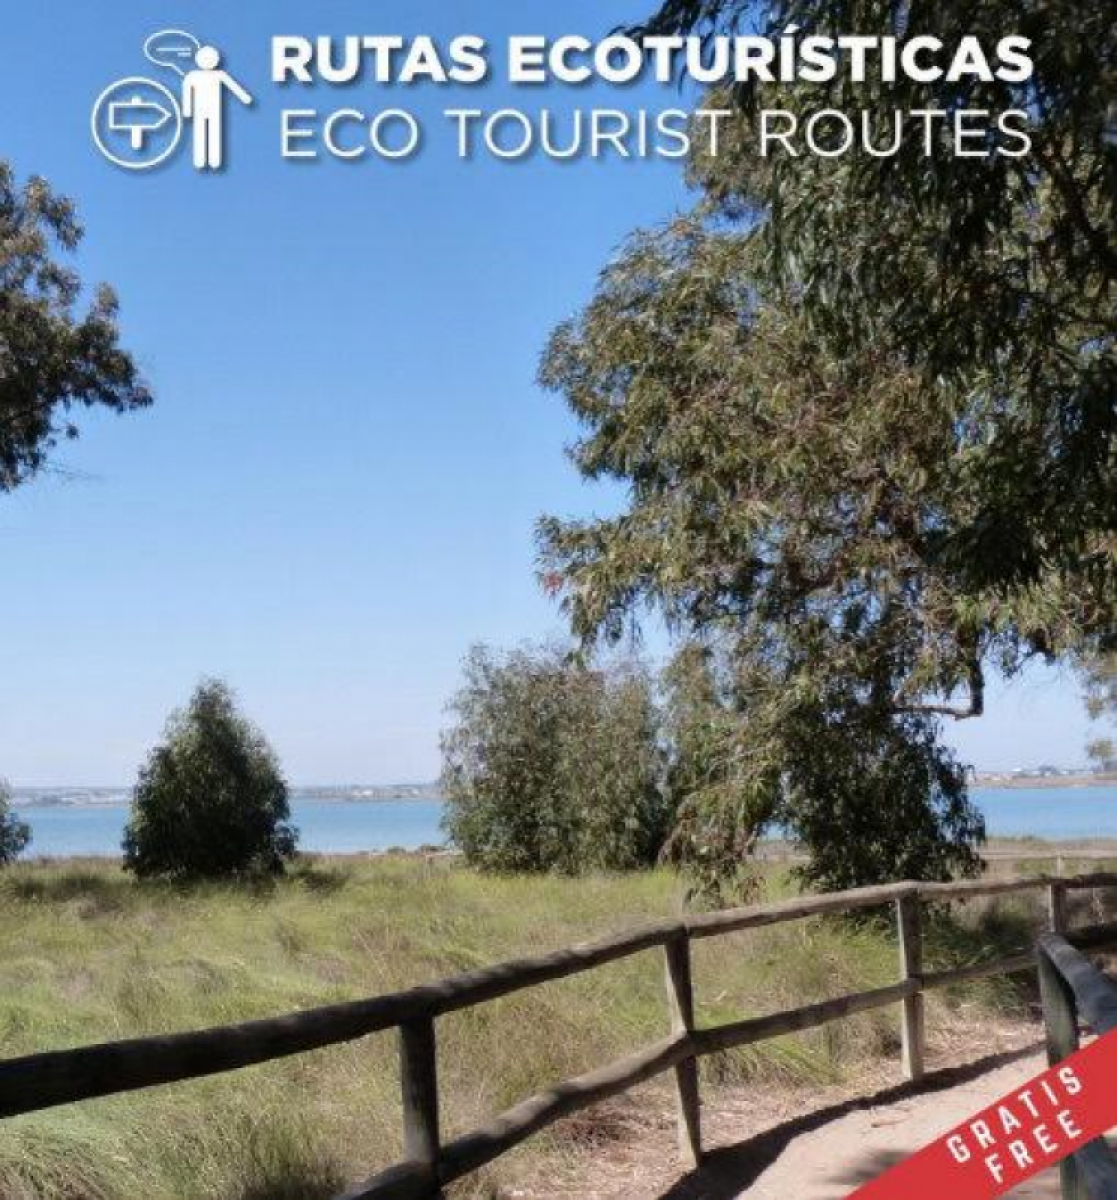 Until May 2017, free guided walks in the natural park of Torrevieja and La Mata